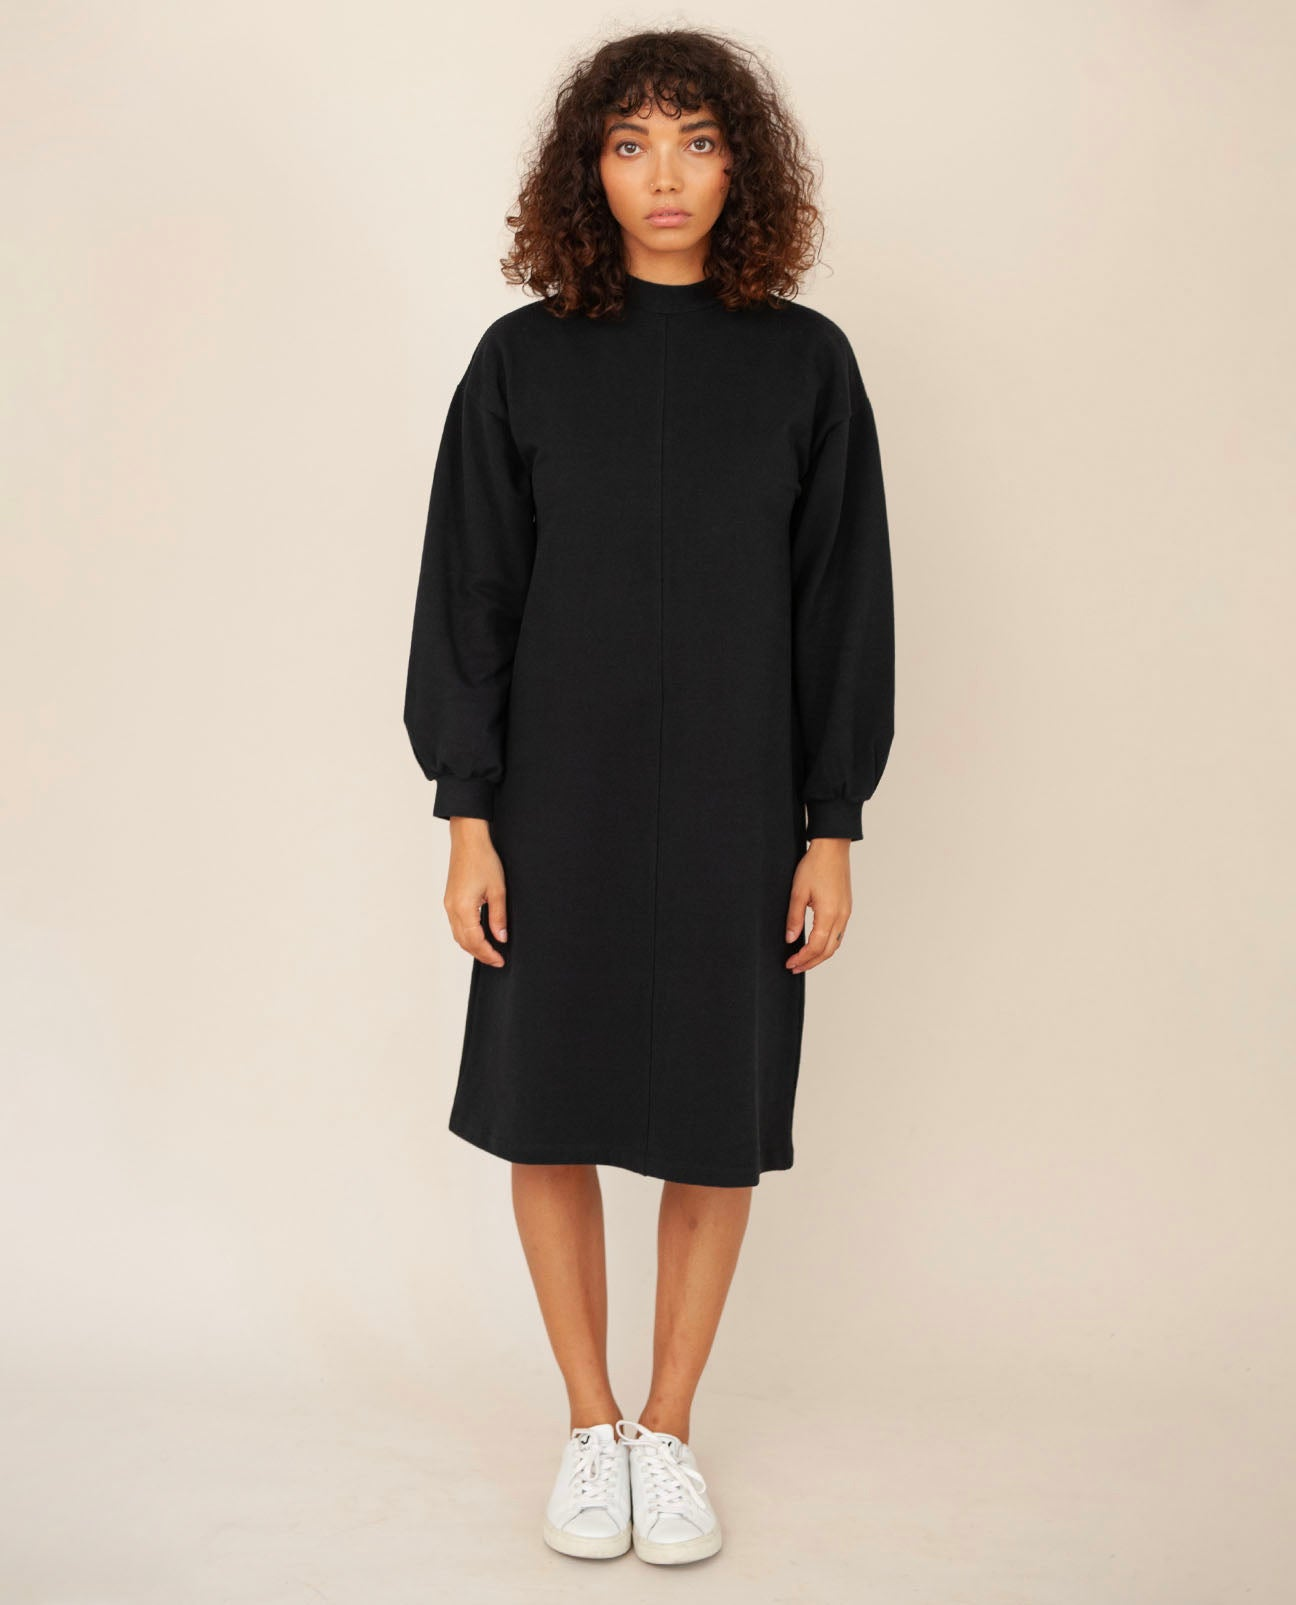 MARTA Organic Cotton Dress In Black